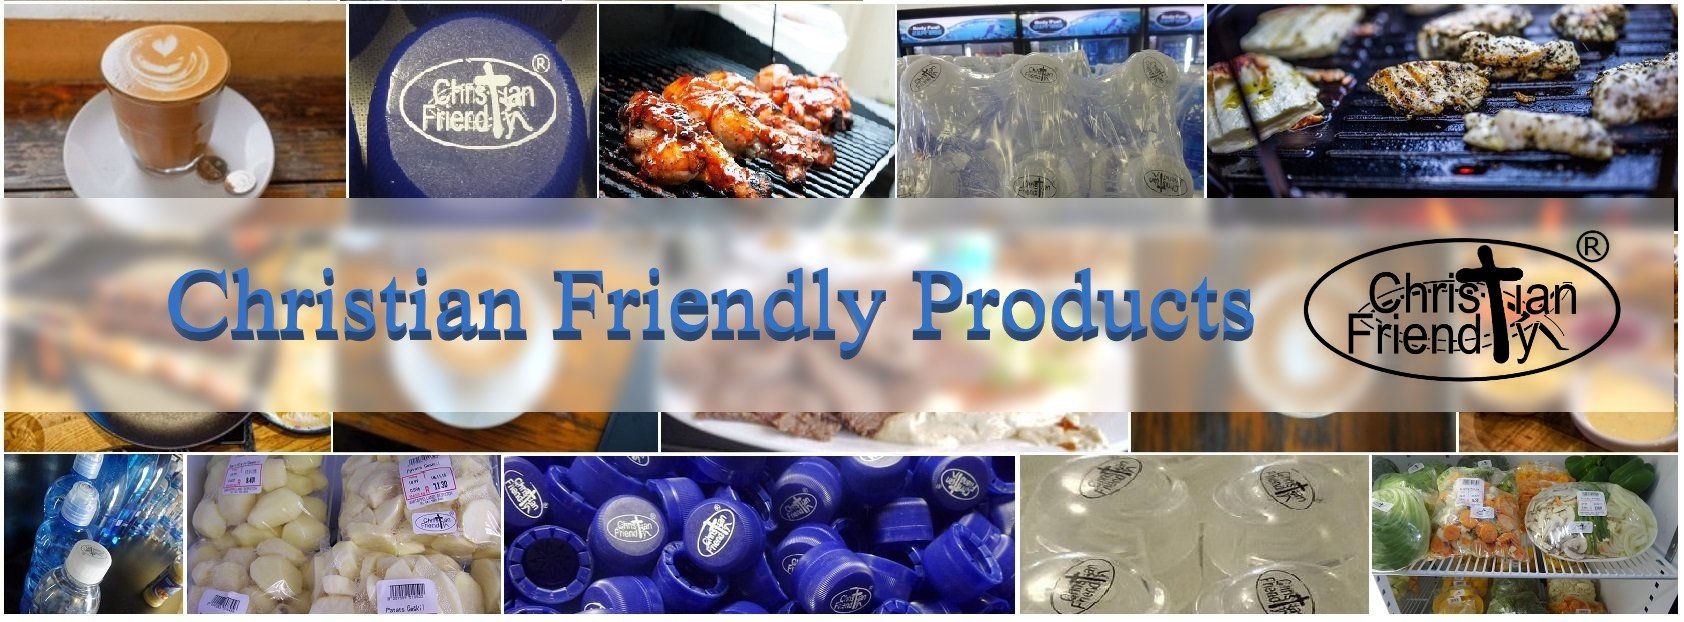 Christian Friendly Products